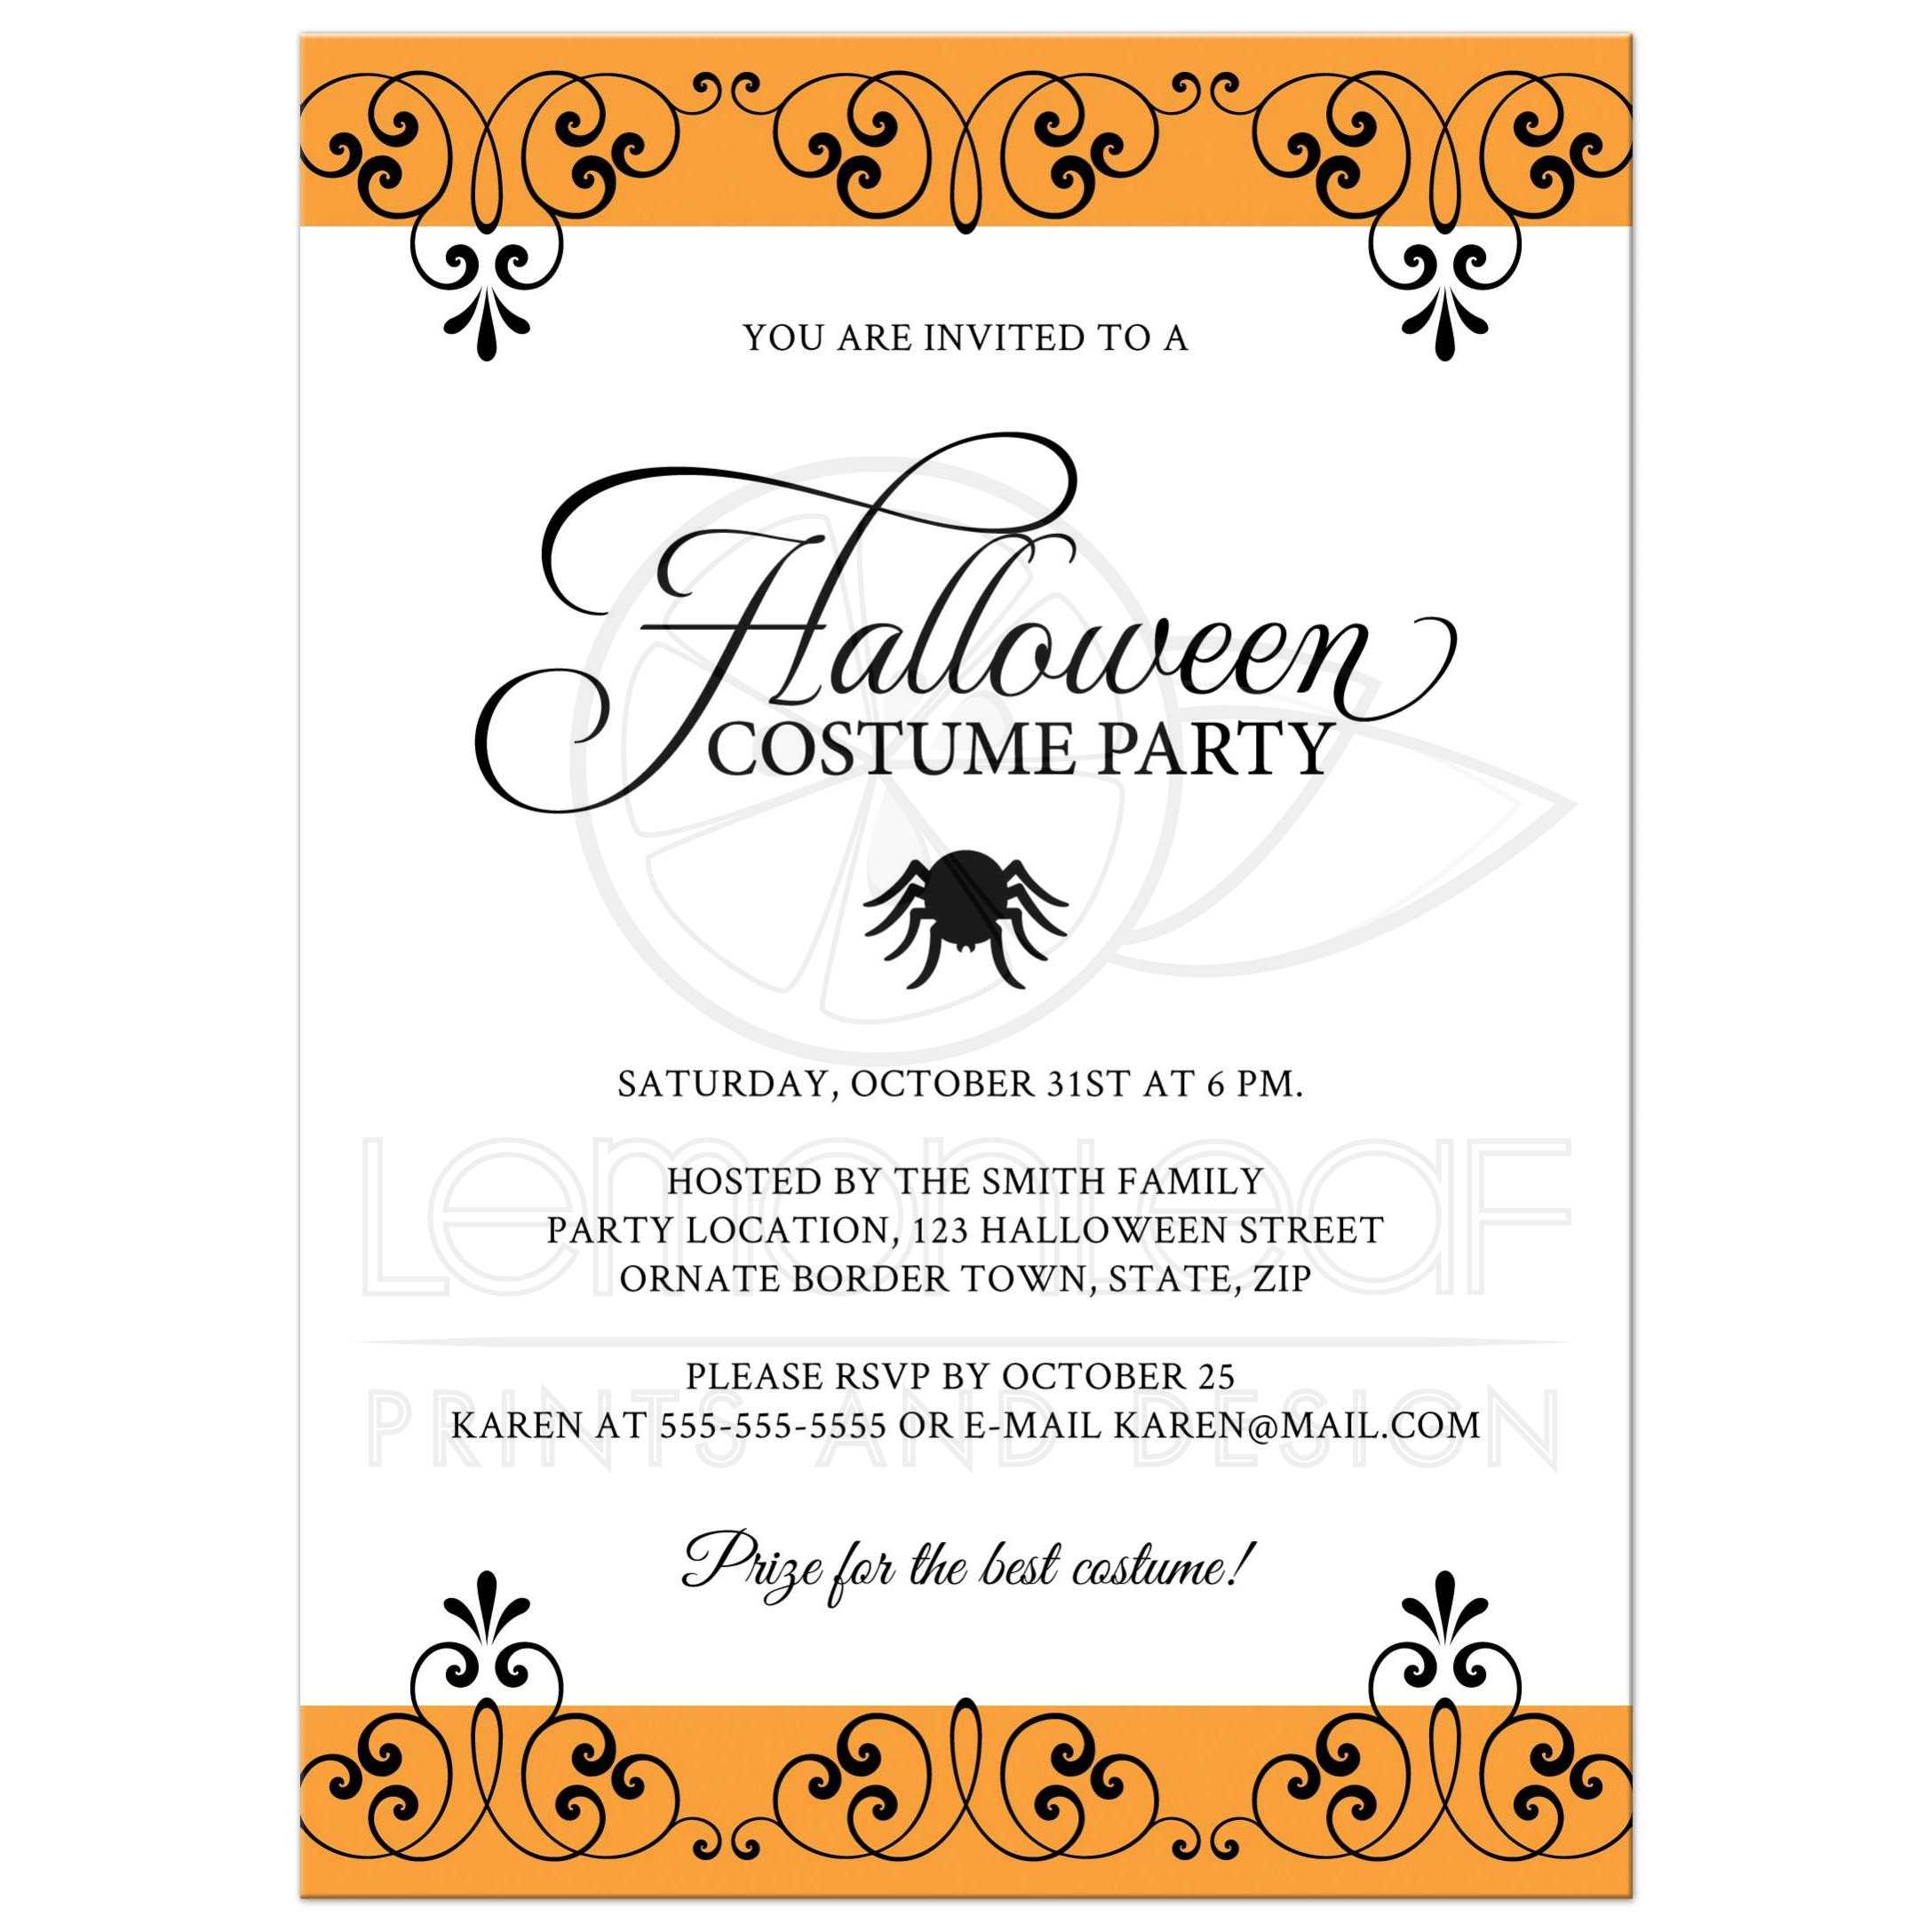 Halloween costume party invitation with ornate black and orange – Halloween Costume Party Invite